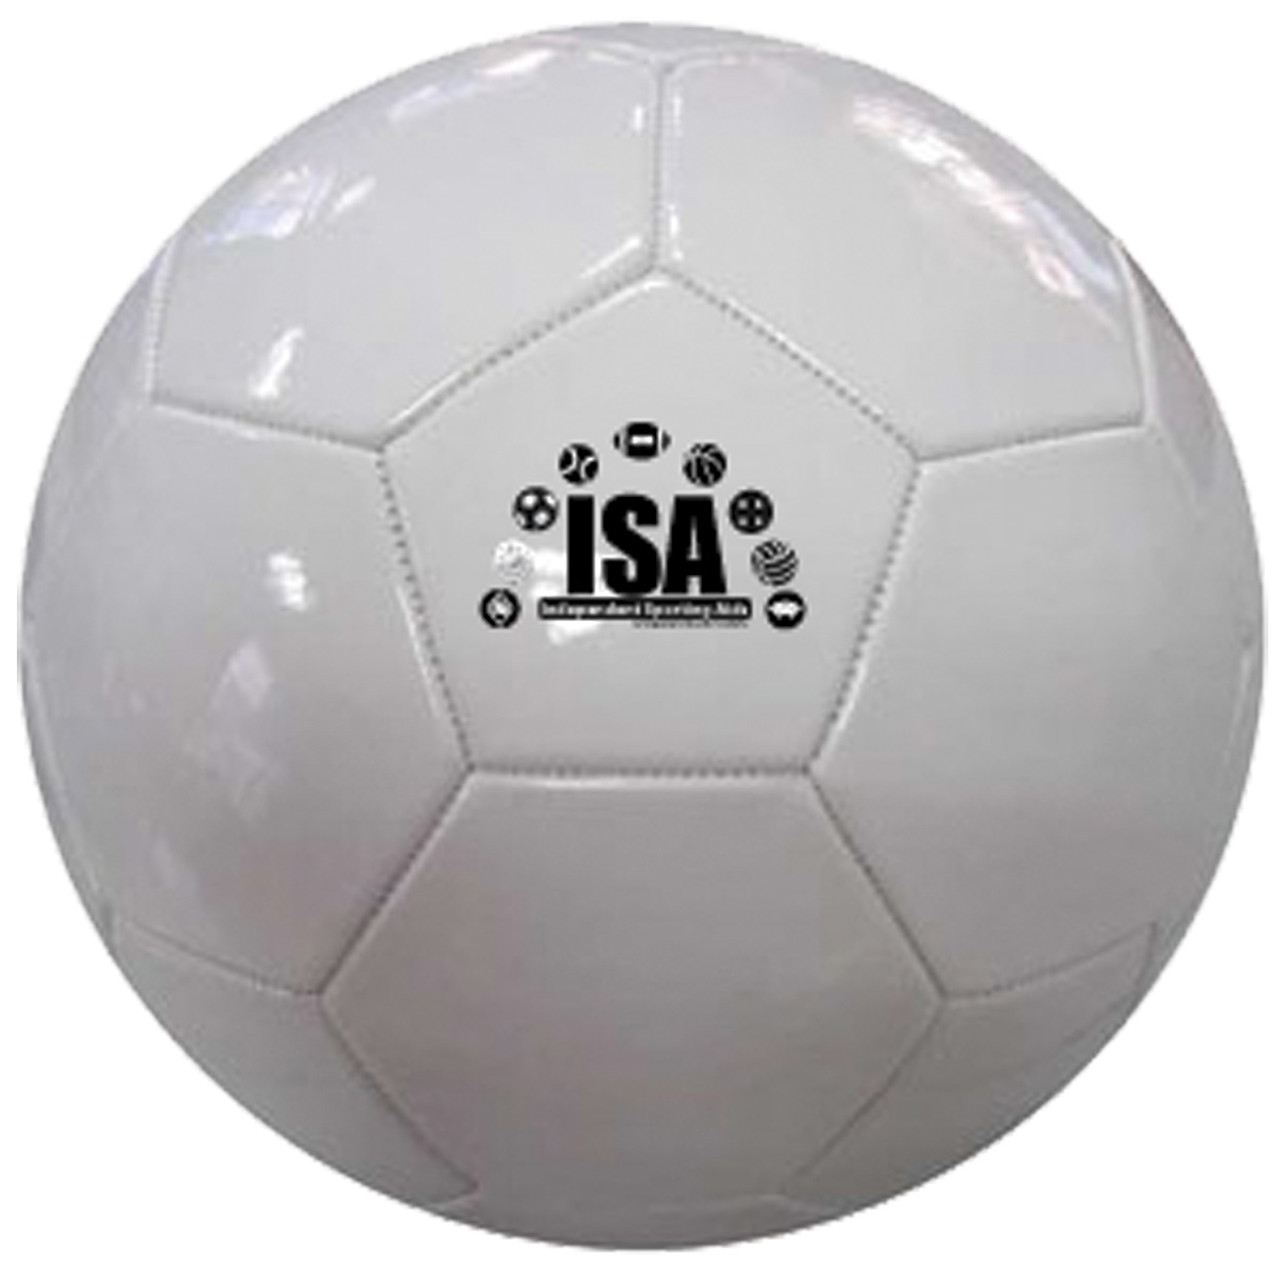 ISA Regulation Soccer Ball with Bells